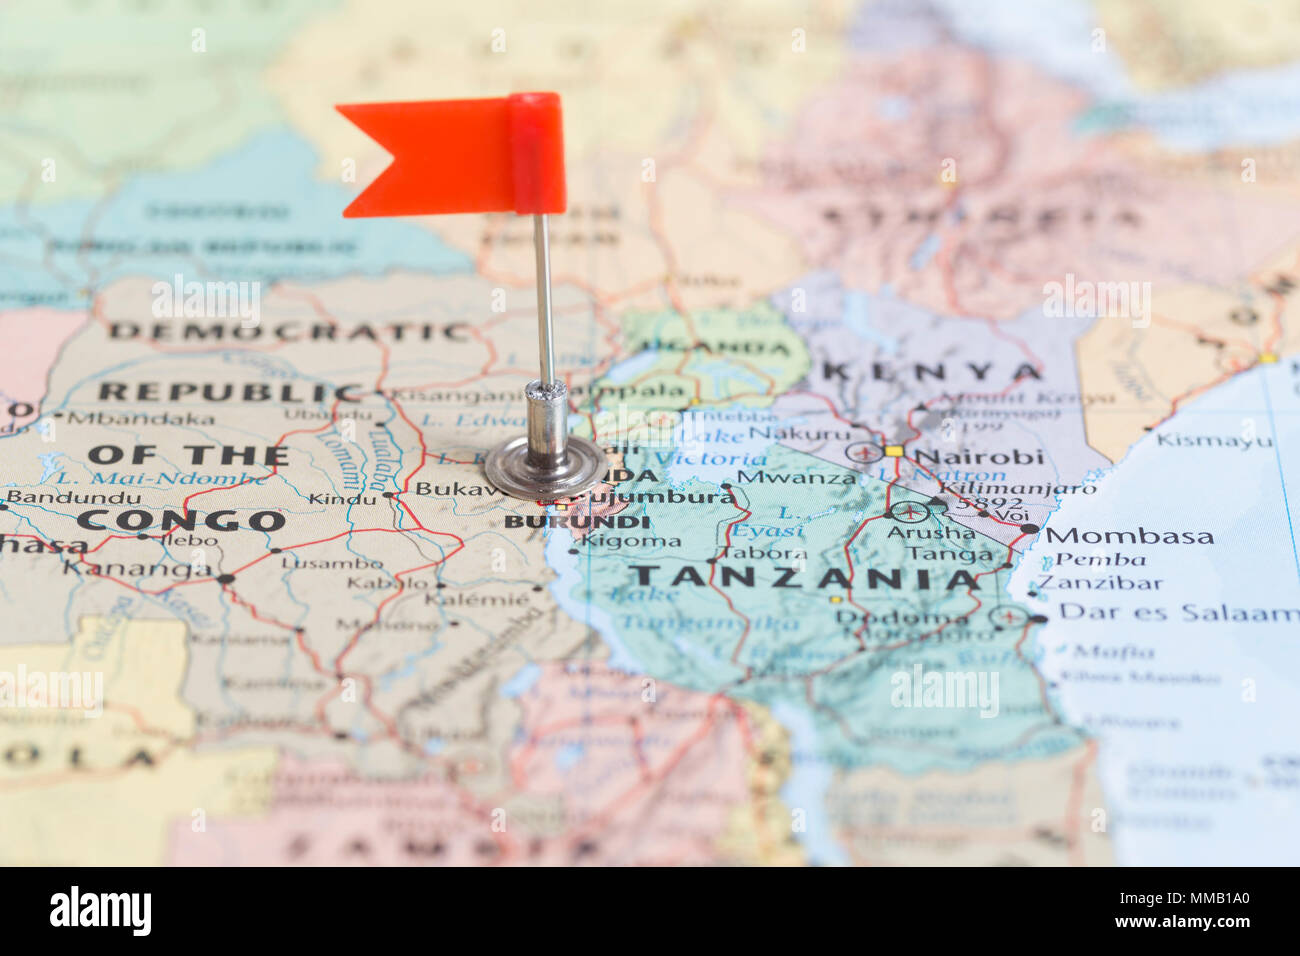 Small red flag marking the African country of Burundi on a world map. Stock Photo